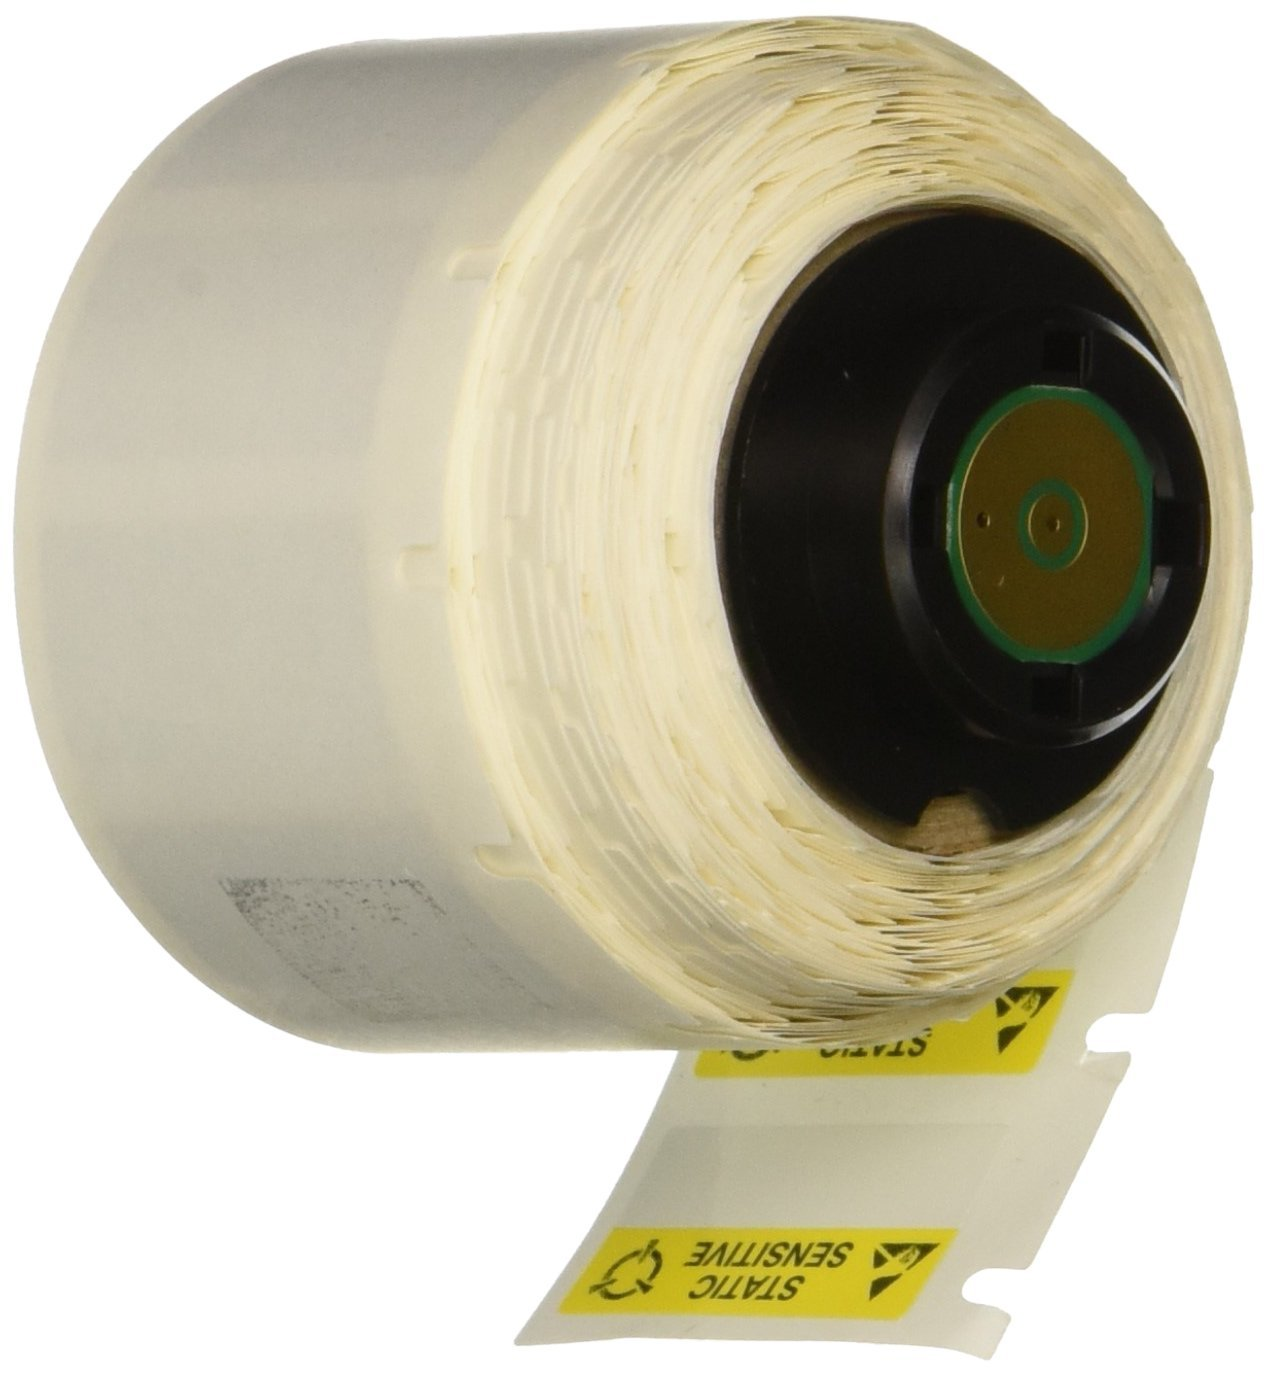 500 Labels per Roll, 1 Roll per Package Legend Static Sensitive Eia Std. 471 And Mil Std. 129J Symbols Black On Yellow Brady PTLSL-17-473 Static Dissipative Polyester Tls2200 // Tls Pc Link Portable Printer Static Awareness Labels